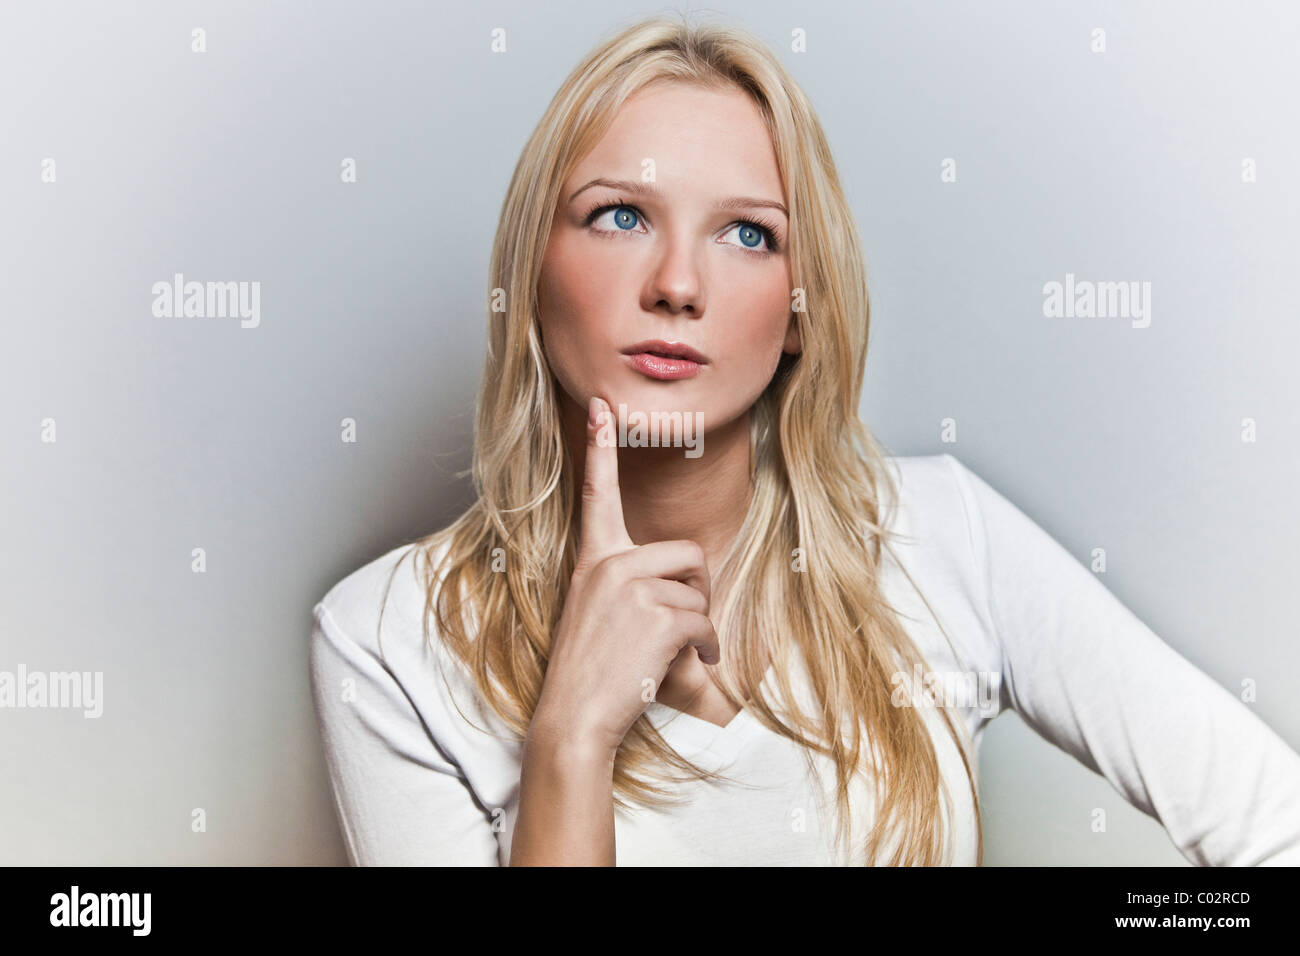 woman, questioning glance - Stock Image